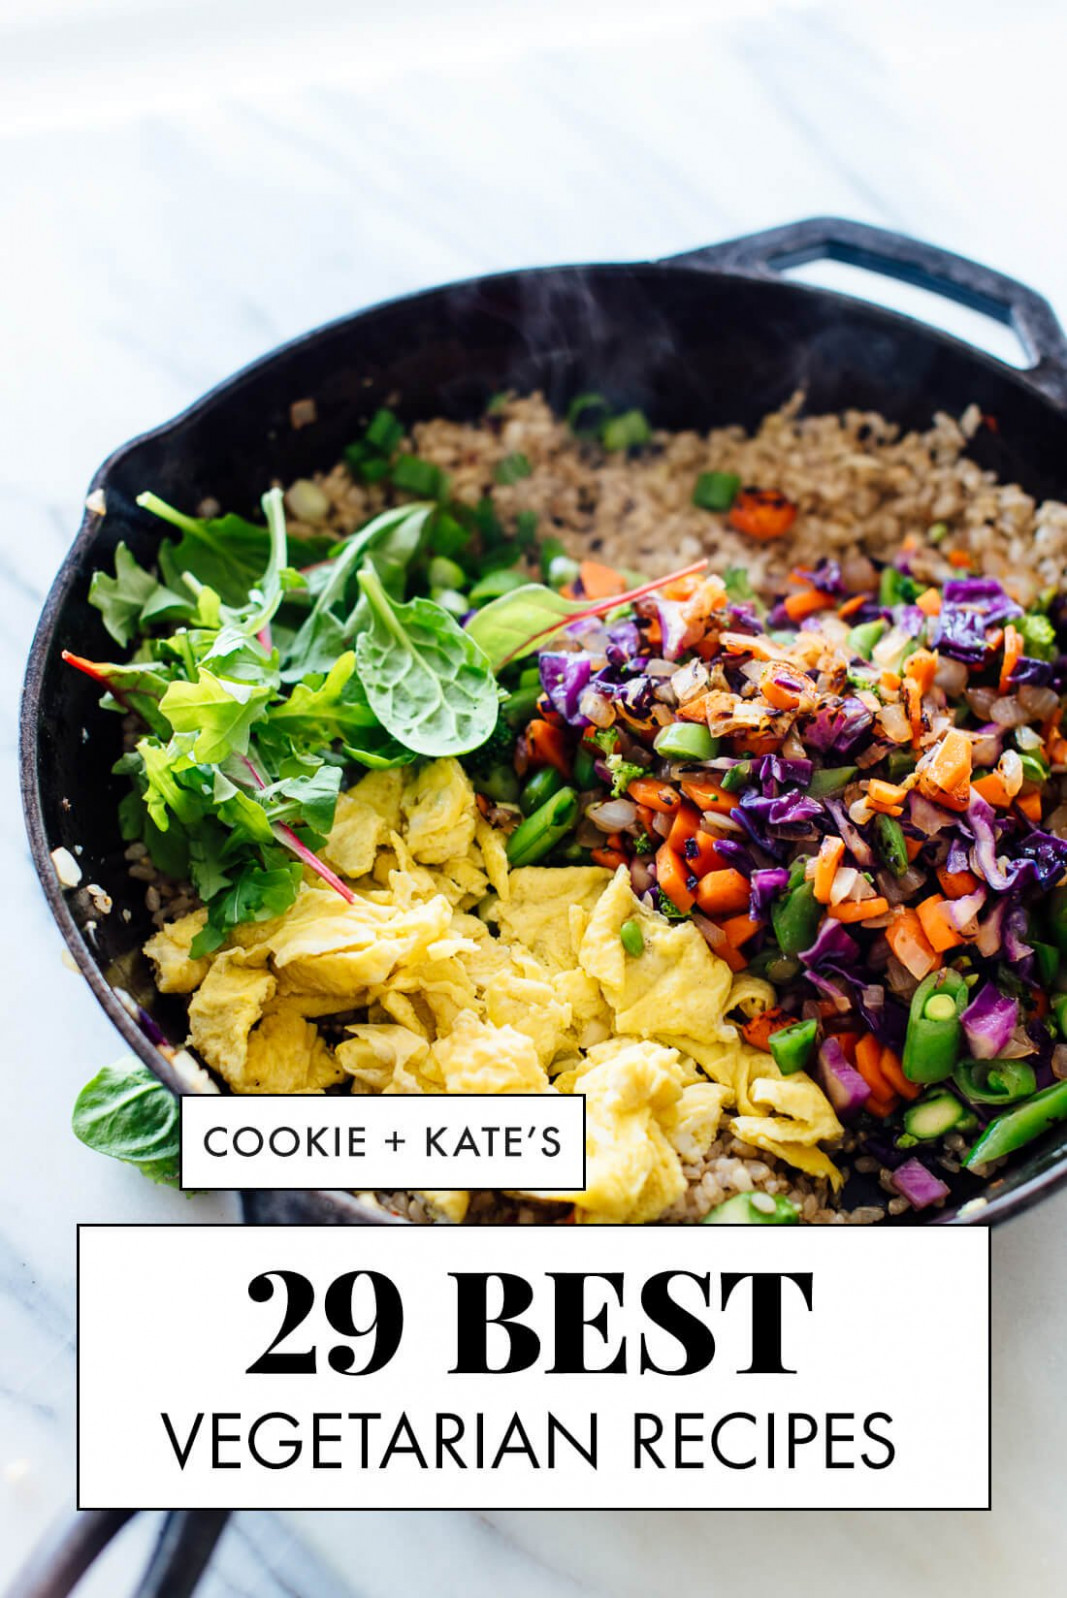 11 Best Vegetarian Recipes - Cookie and Kate - unique recipes dinner